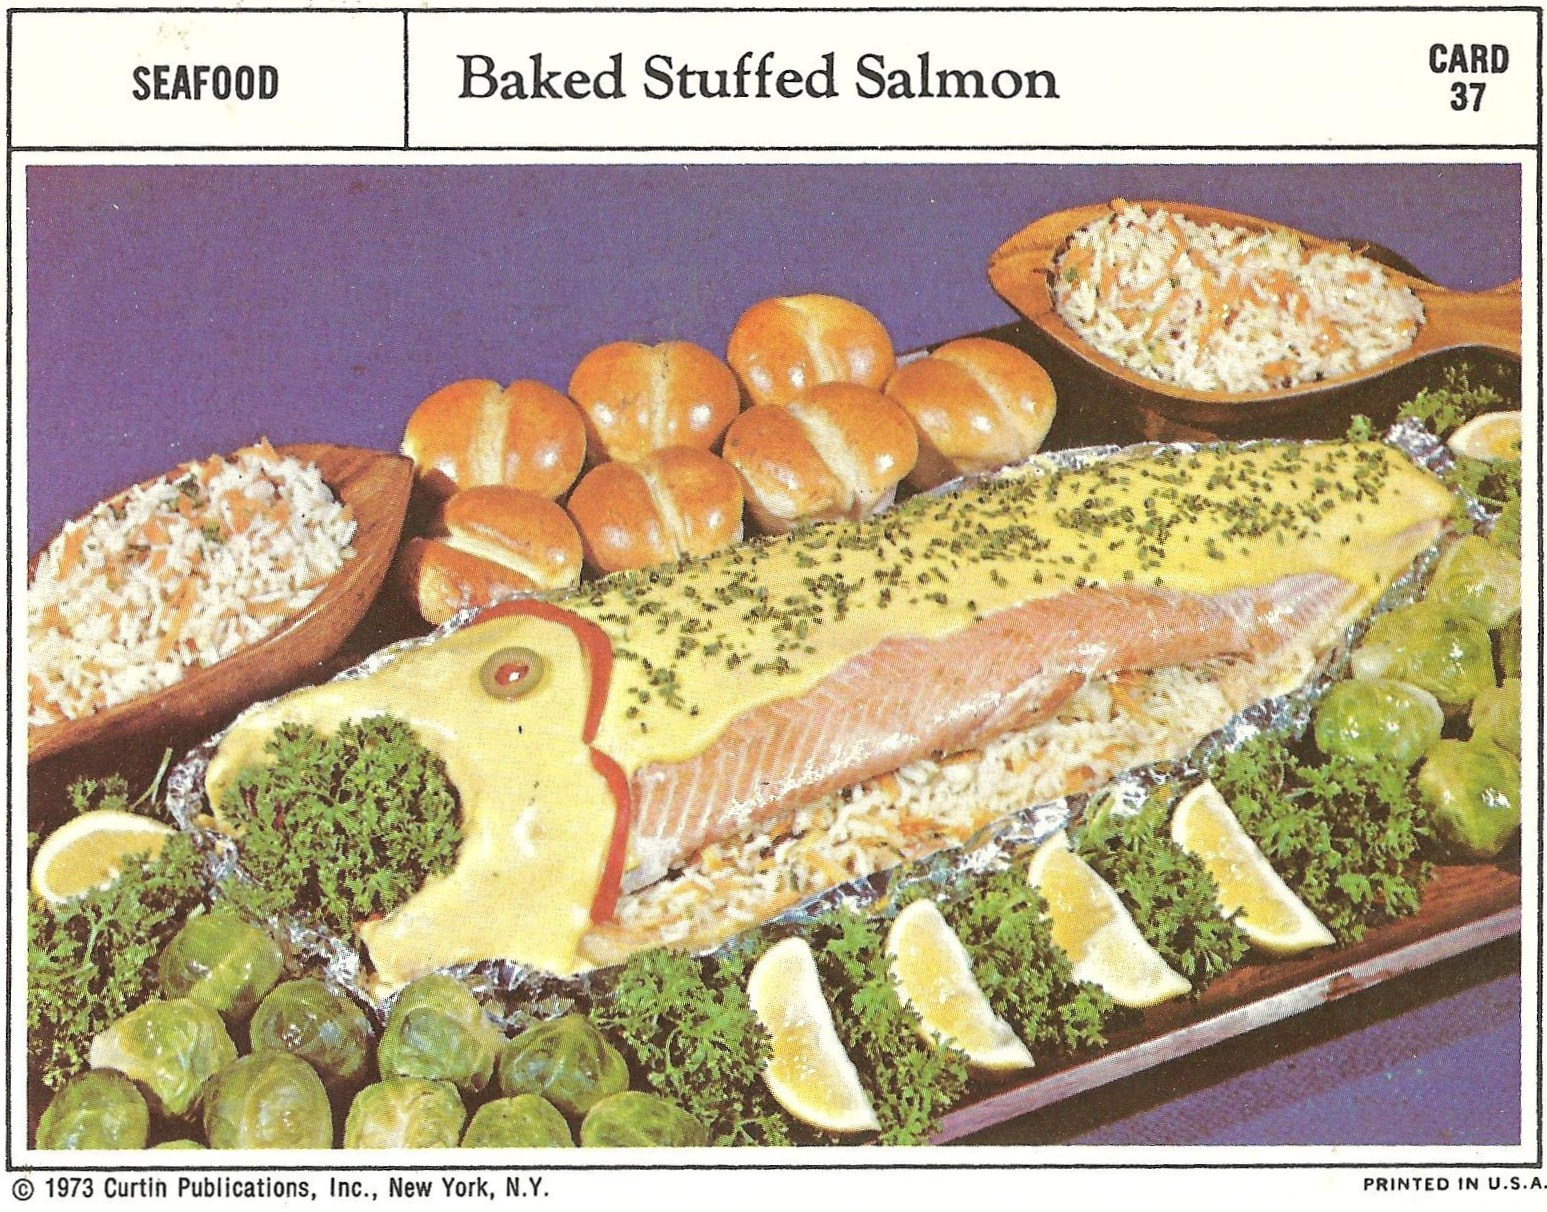 Bad and ugly of retro food sheesh recipe cards 14 this is demented on so many levels theres a salmon with a pimento eye and a fake mouth gagging on parsley not to mention the weird yellow sauce to forumfinder Gallery